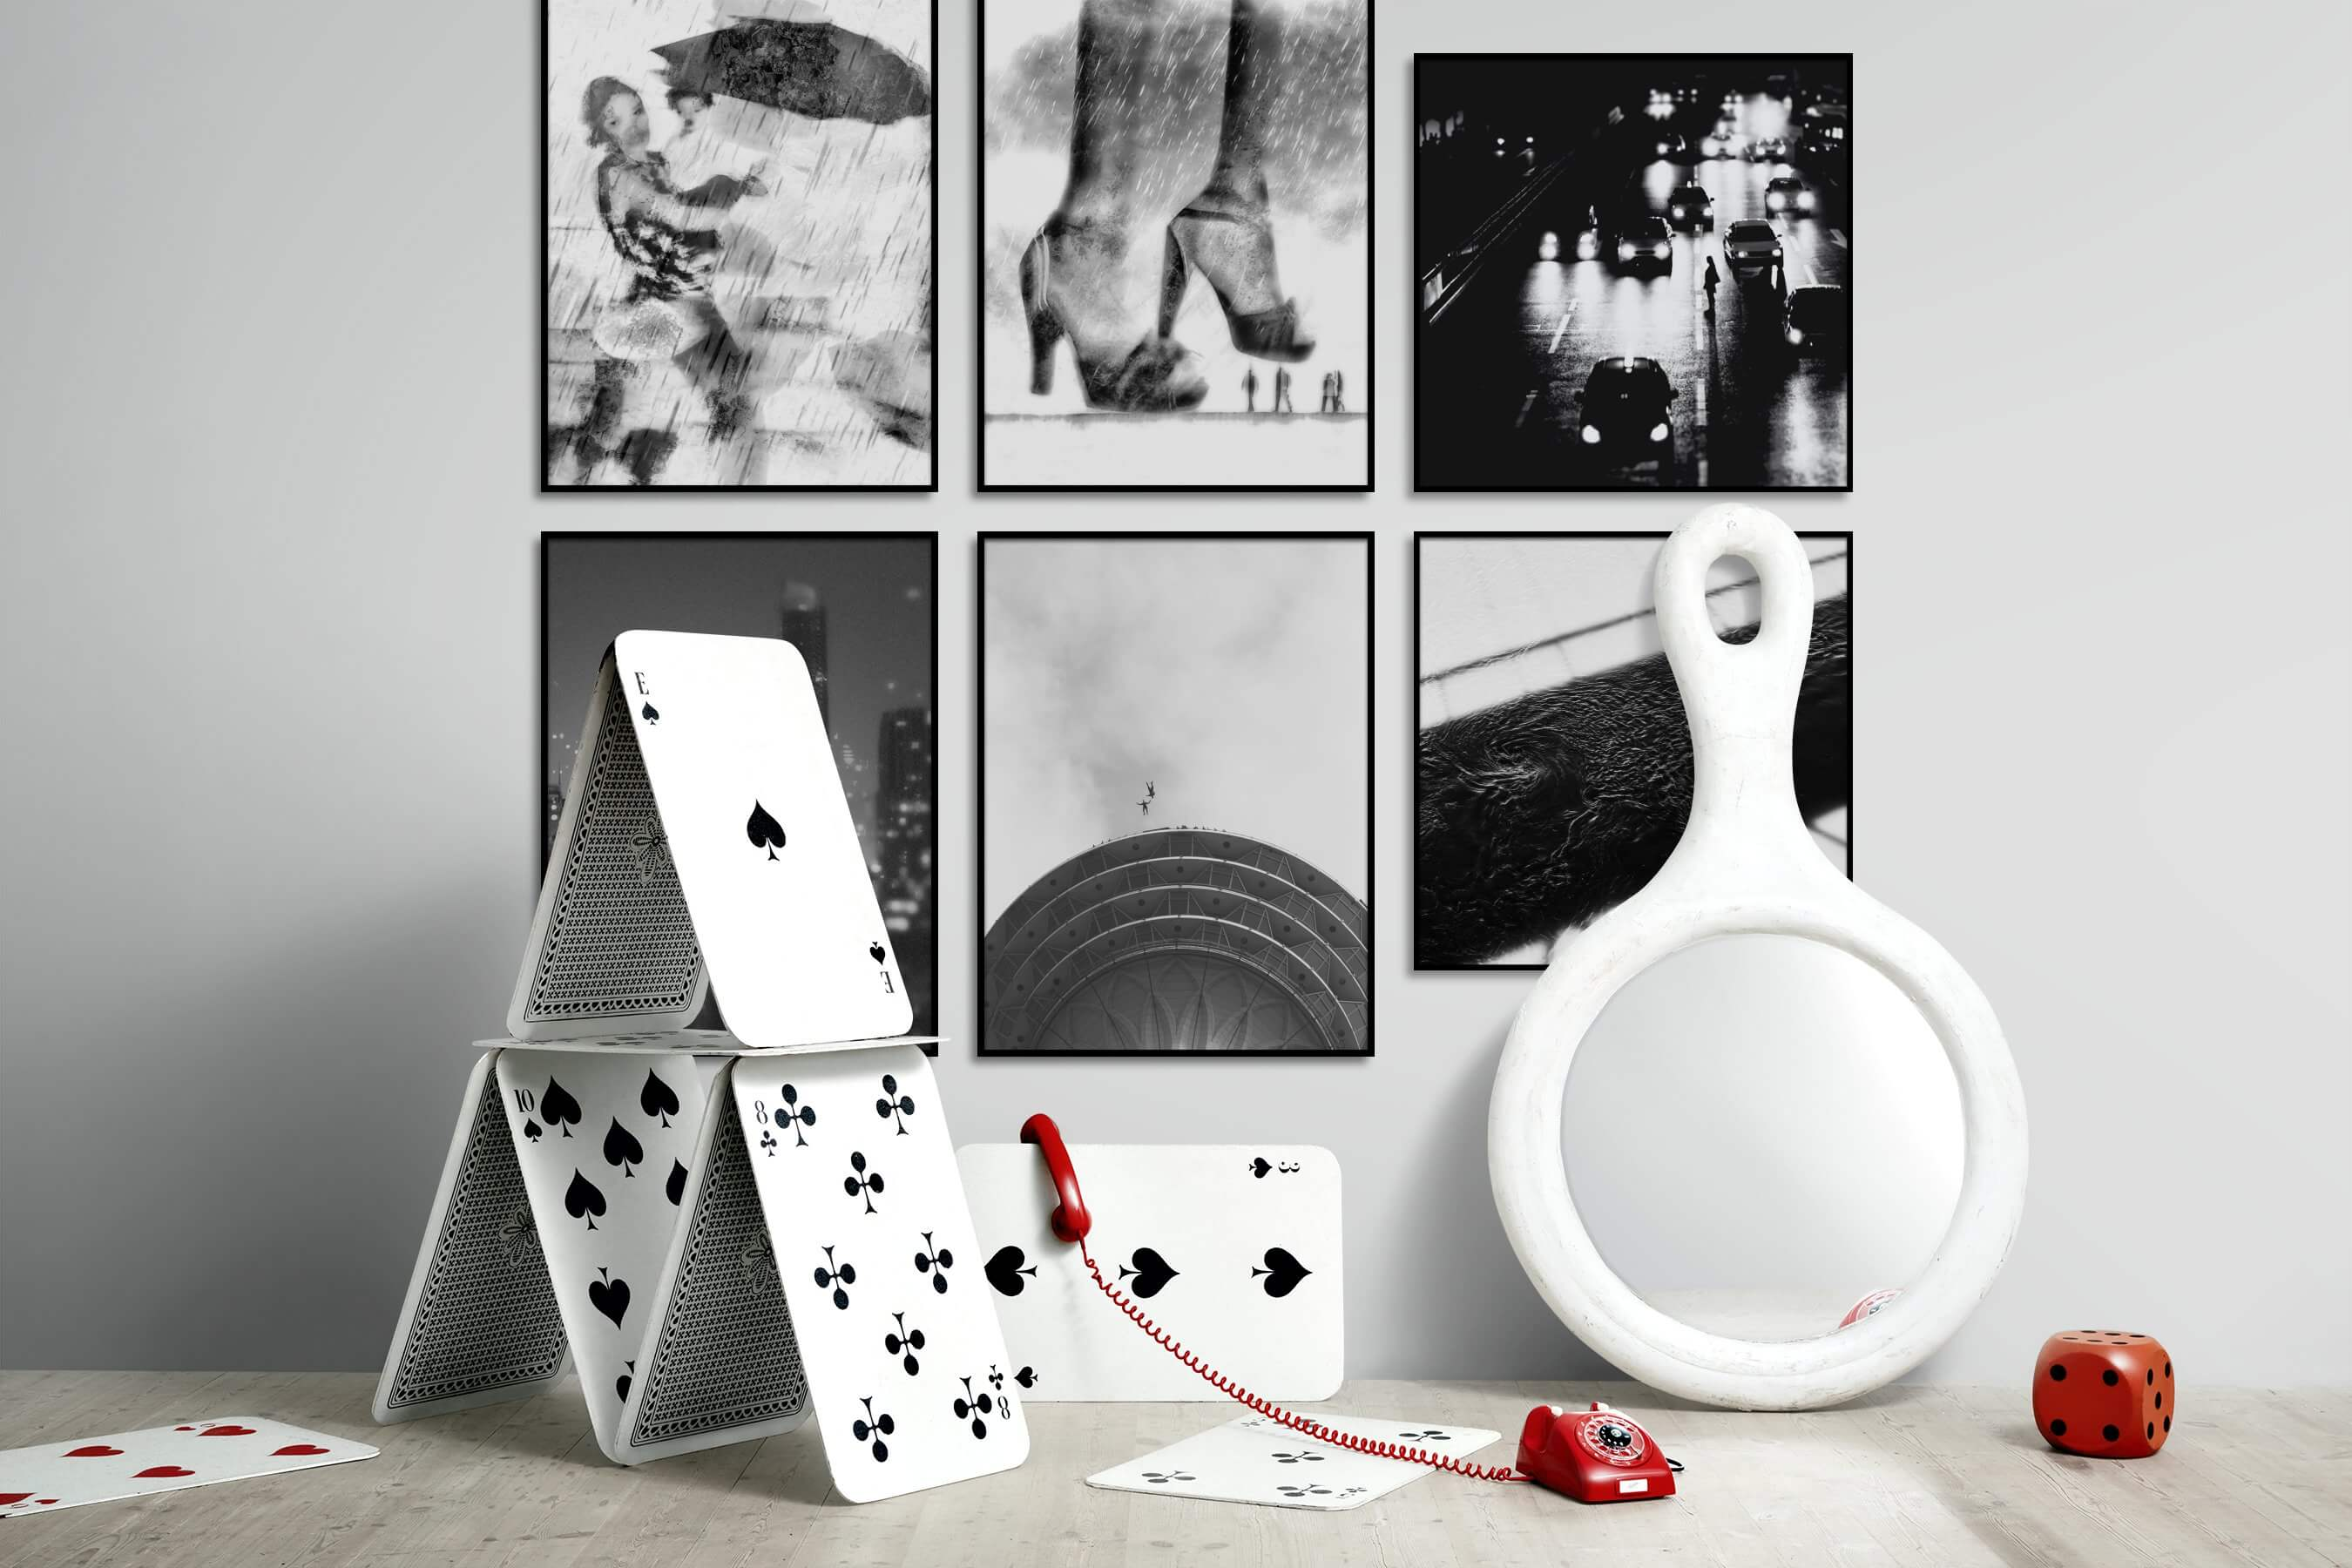 Gallery wall idea with six framed pictures arranged on a wall depicting Artsy, Black & White, Fashion & Beauty, For the Moderate, City Life, and For the Minimalist